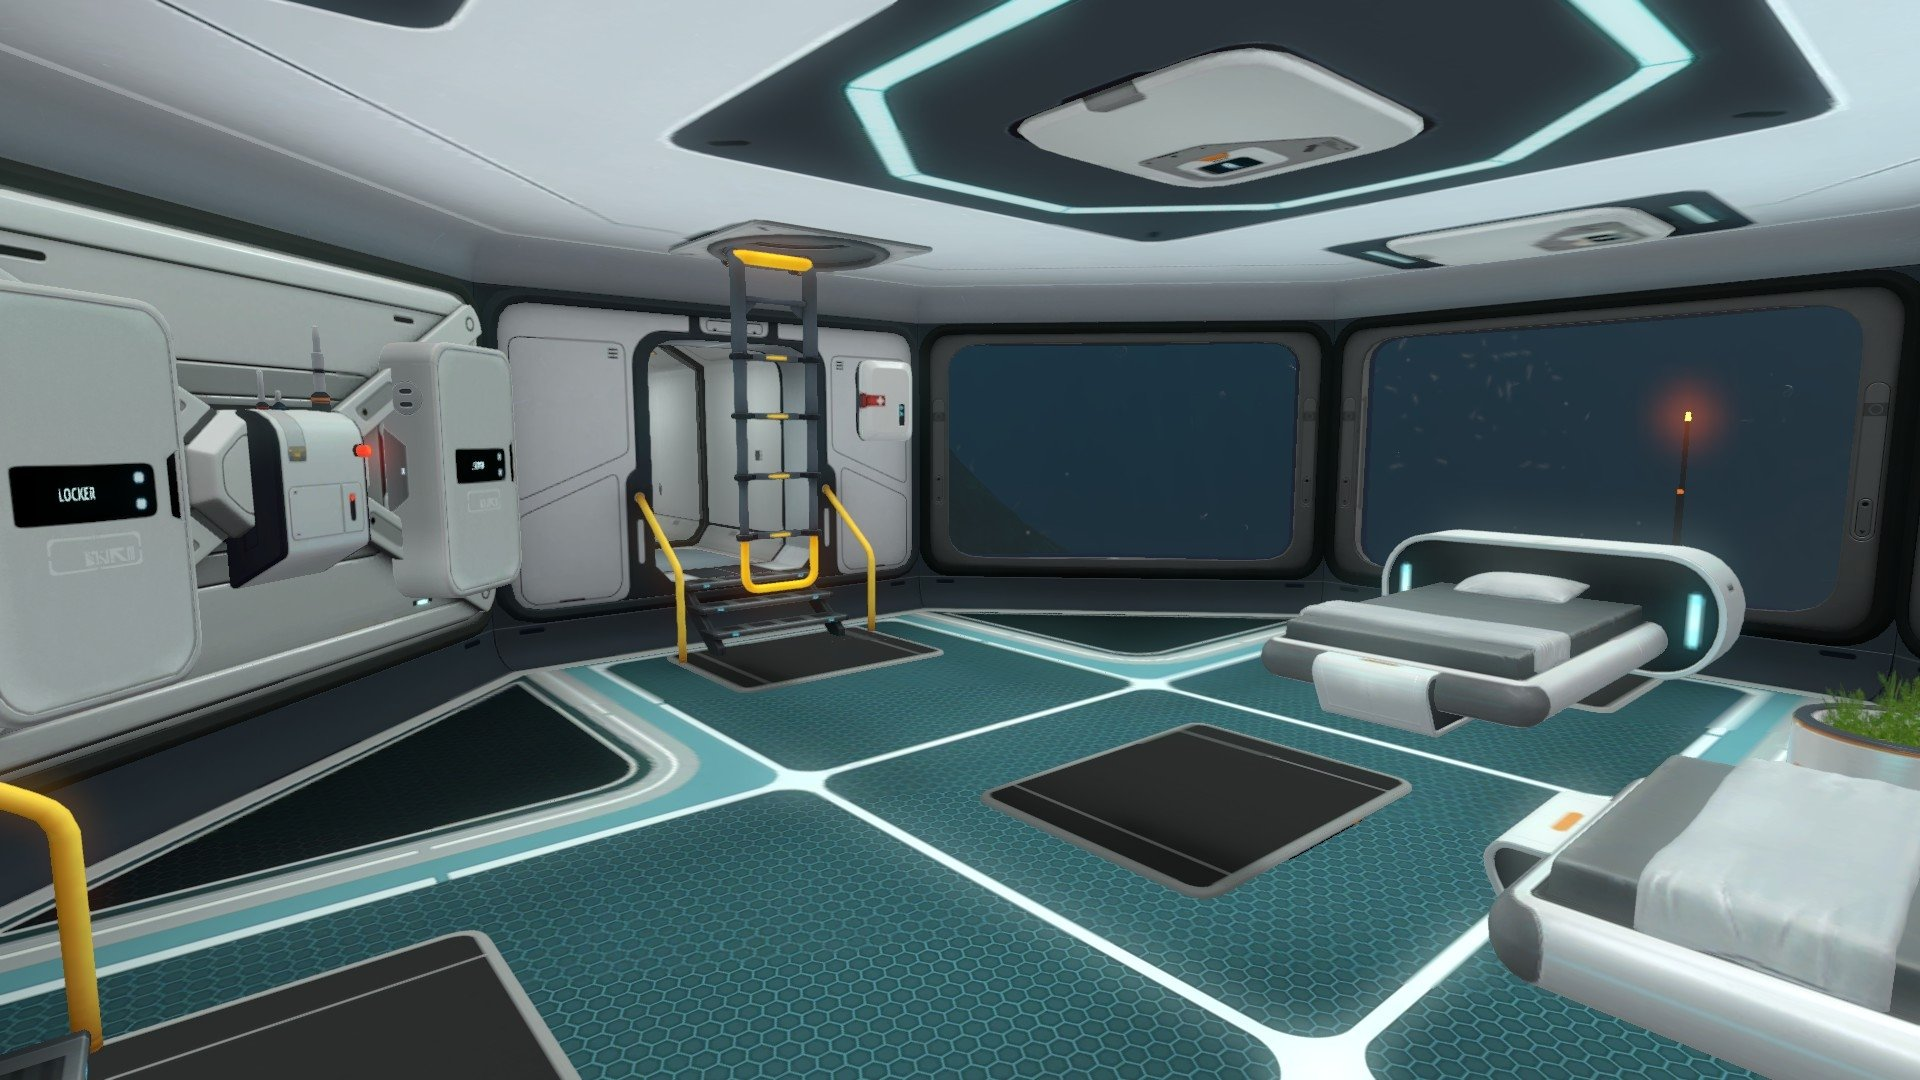 subnautica how to build base